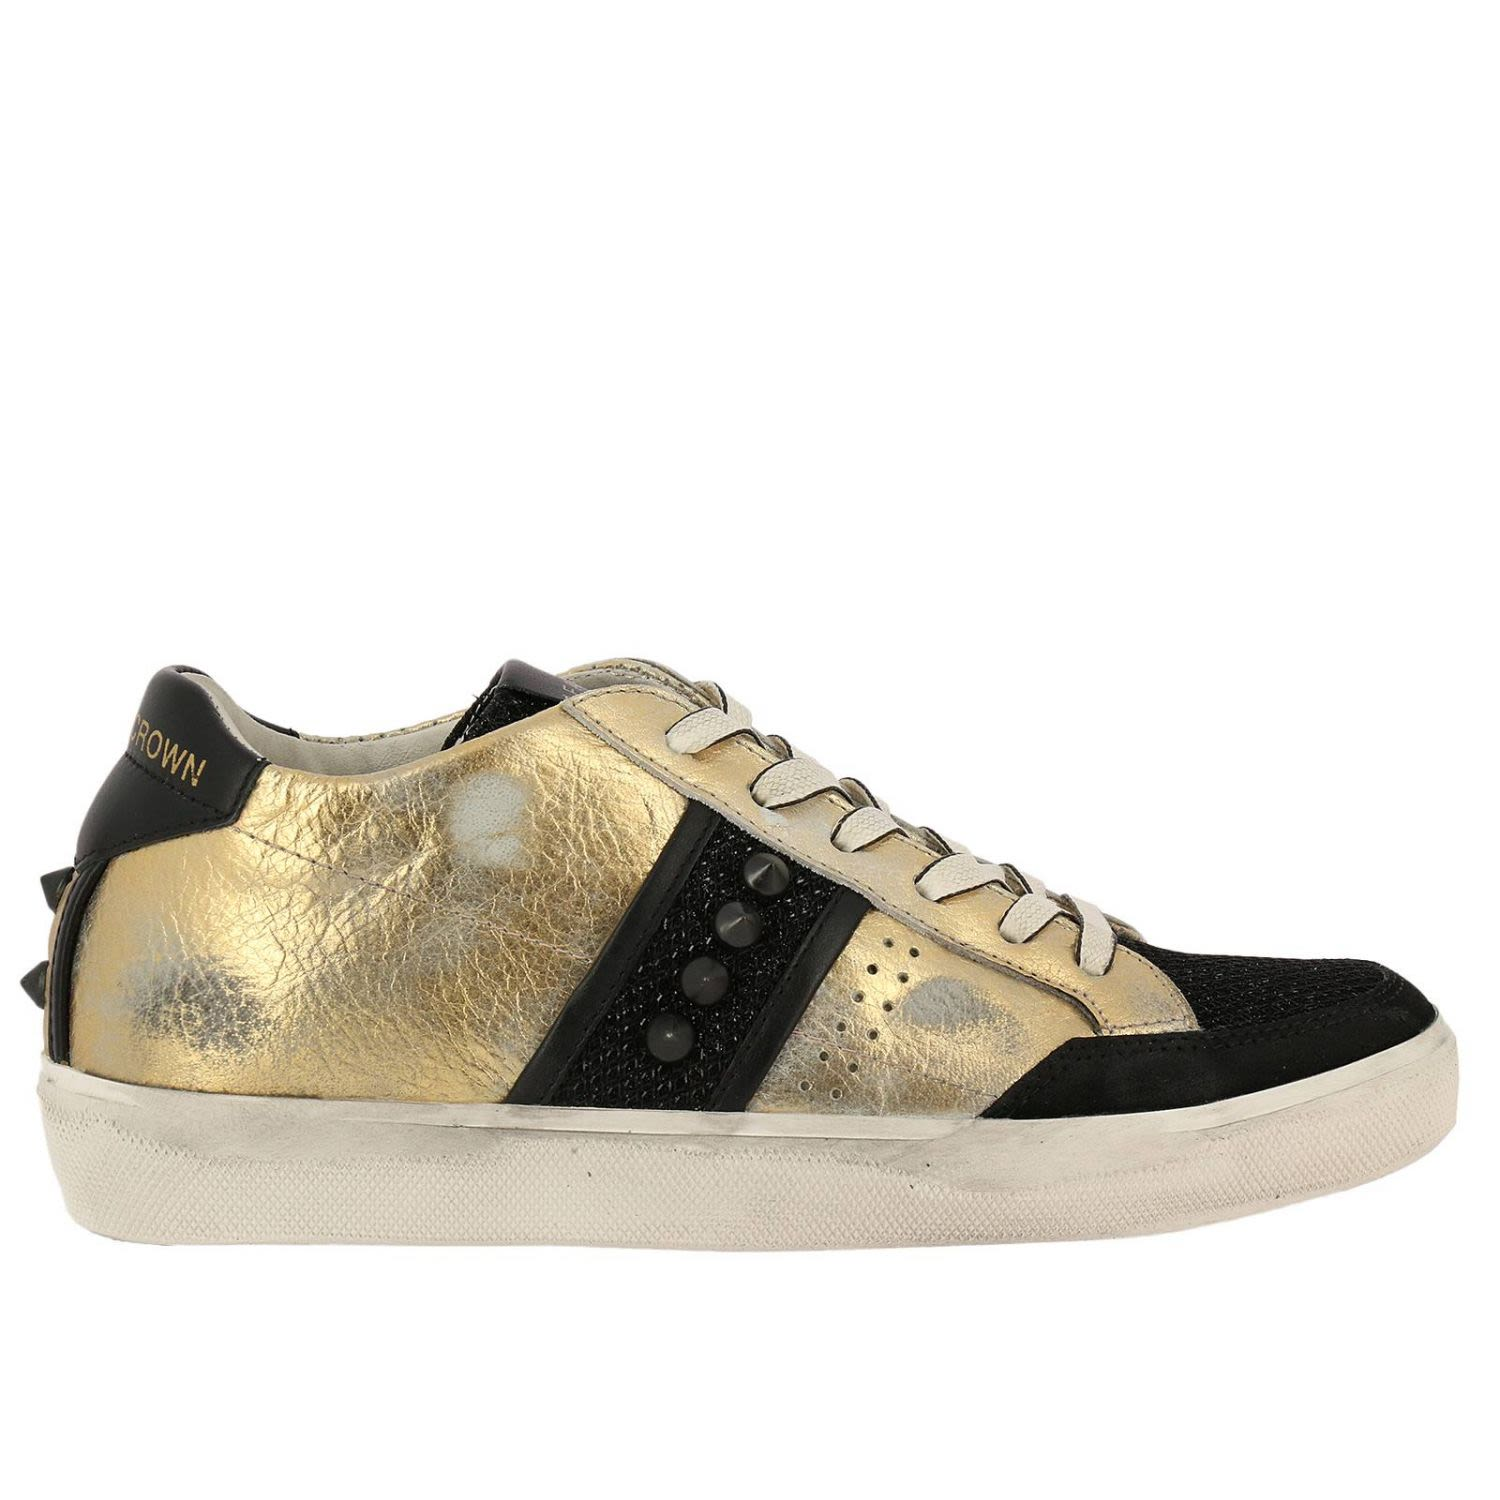 Shoes Shoes Women Leather Crown